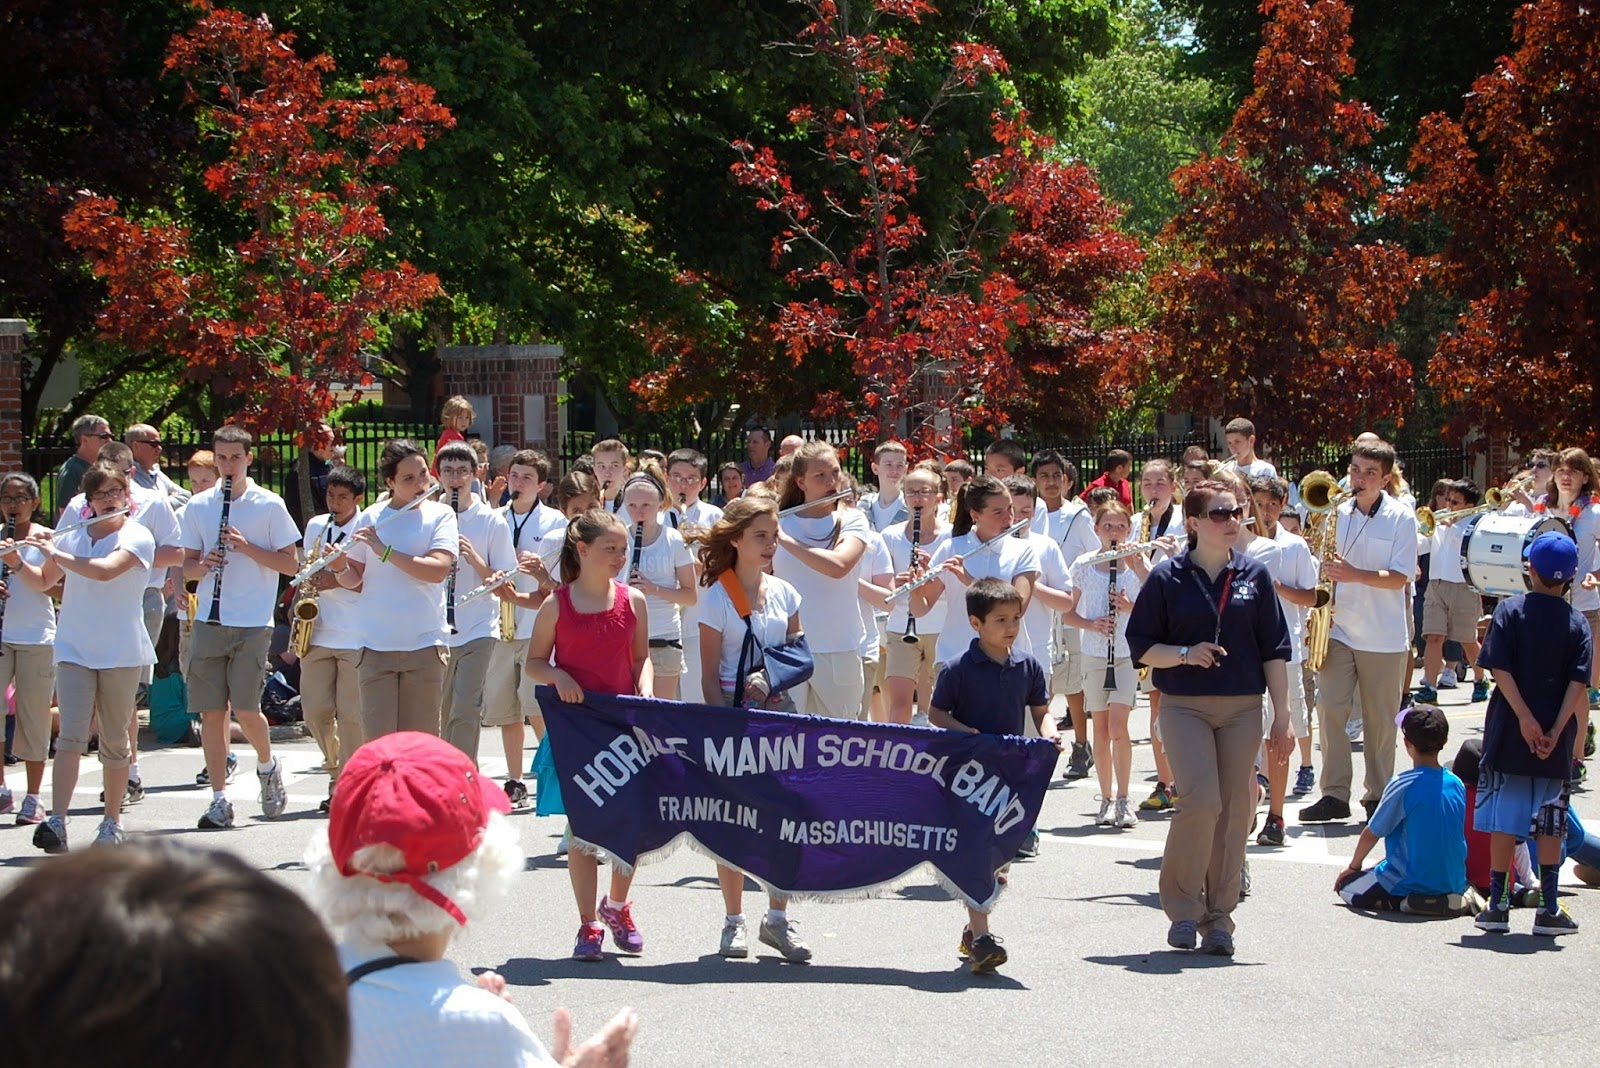 Horace Mann Middle School Band from Memorial Day parade 2013